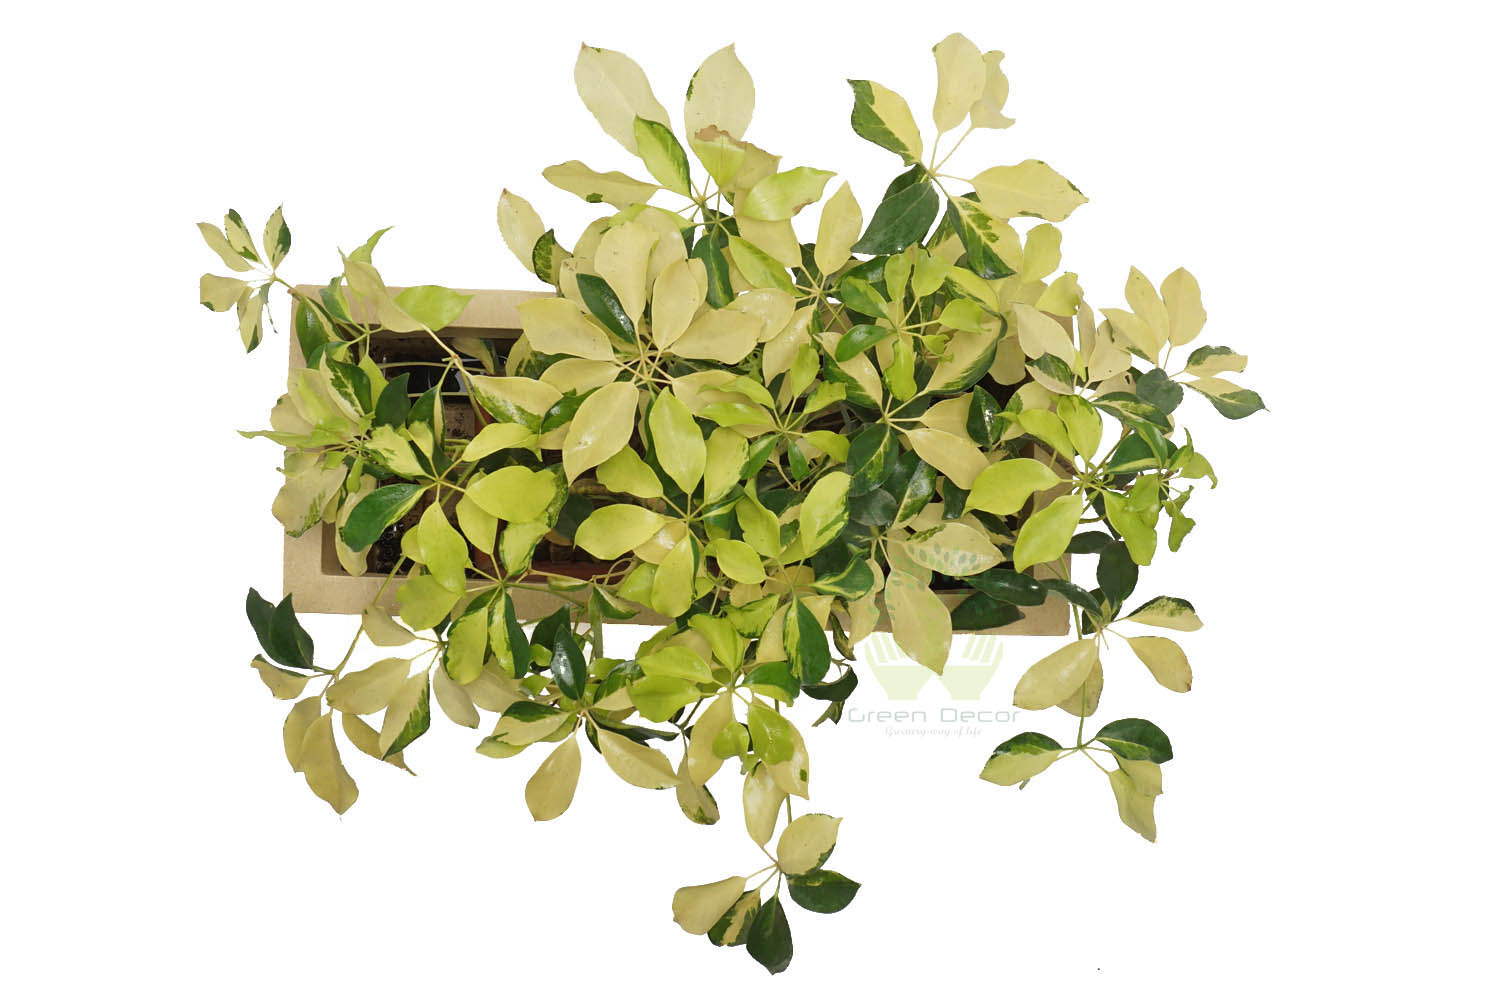 Buy Scheflerra Varigated Plants , White Pots and seeds in Delhi NCR by the best online nursery shop Greendecor.